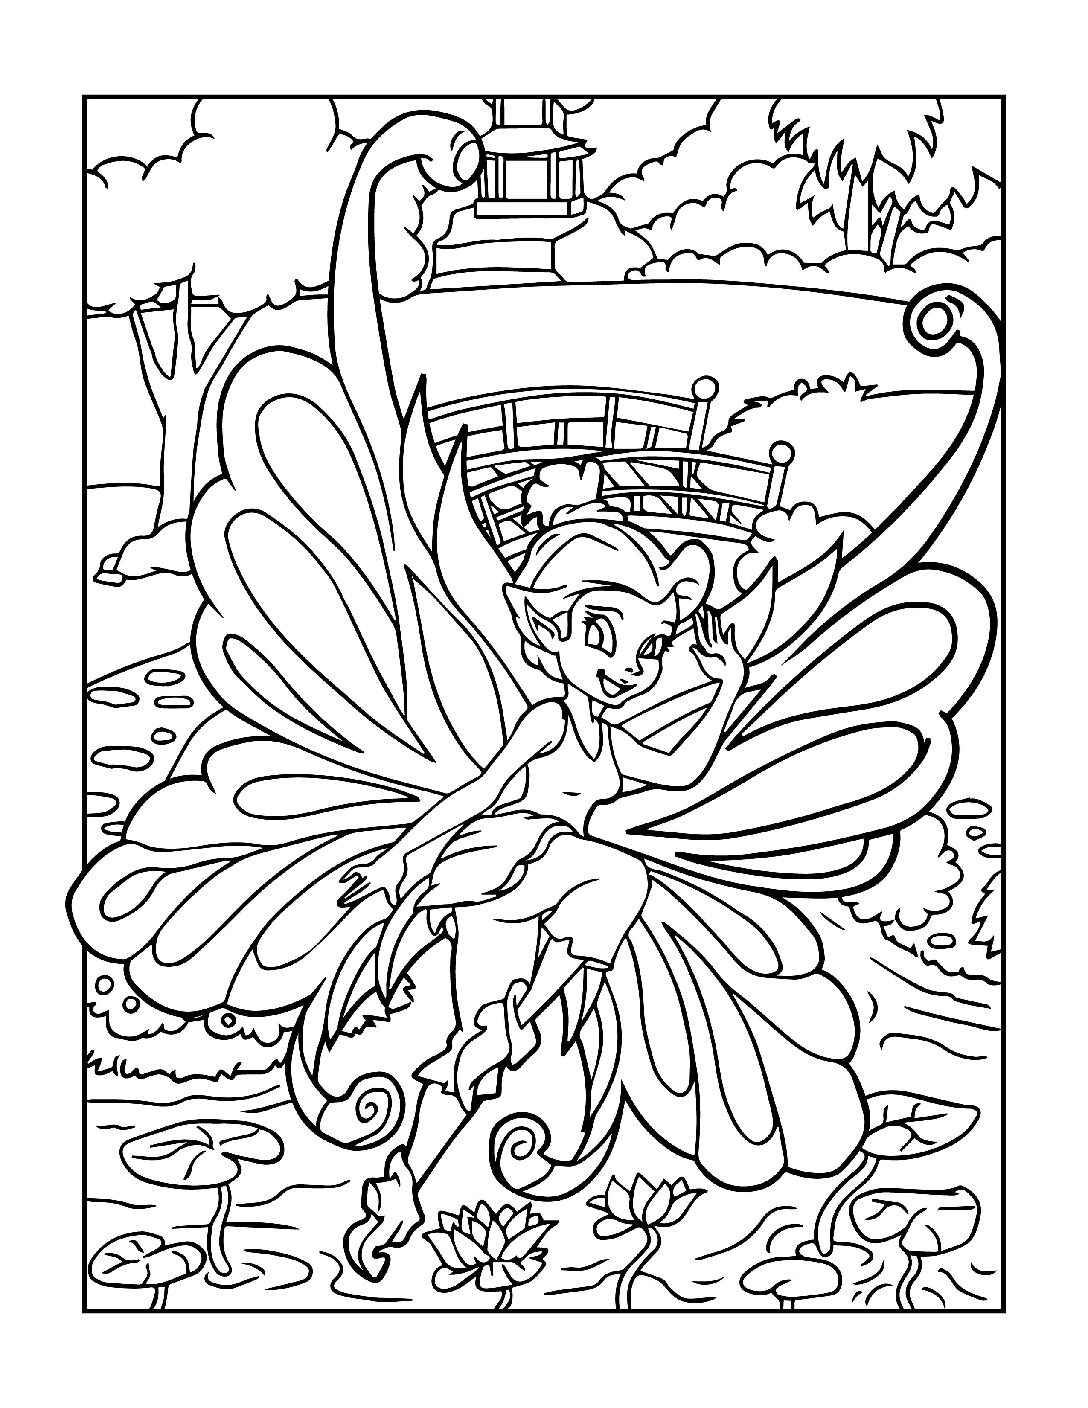 Coloring-Pages-Fairies-7-01-pdf Free Printable Fairy Colouring Pages